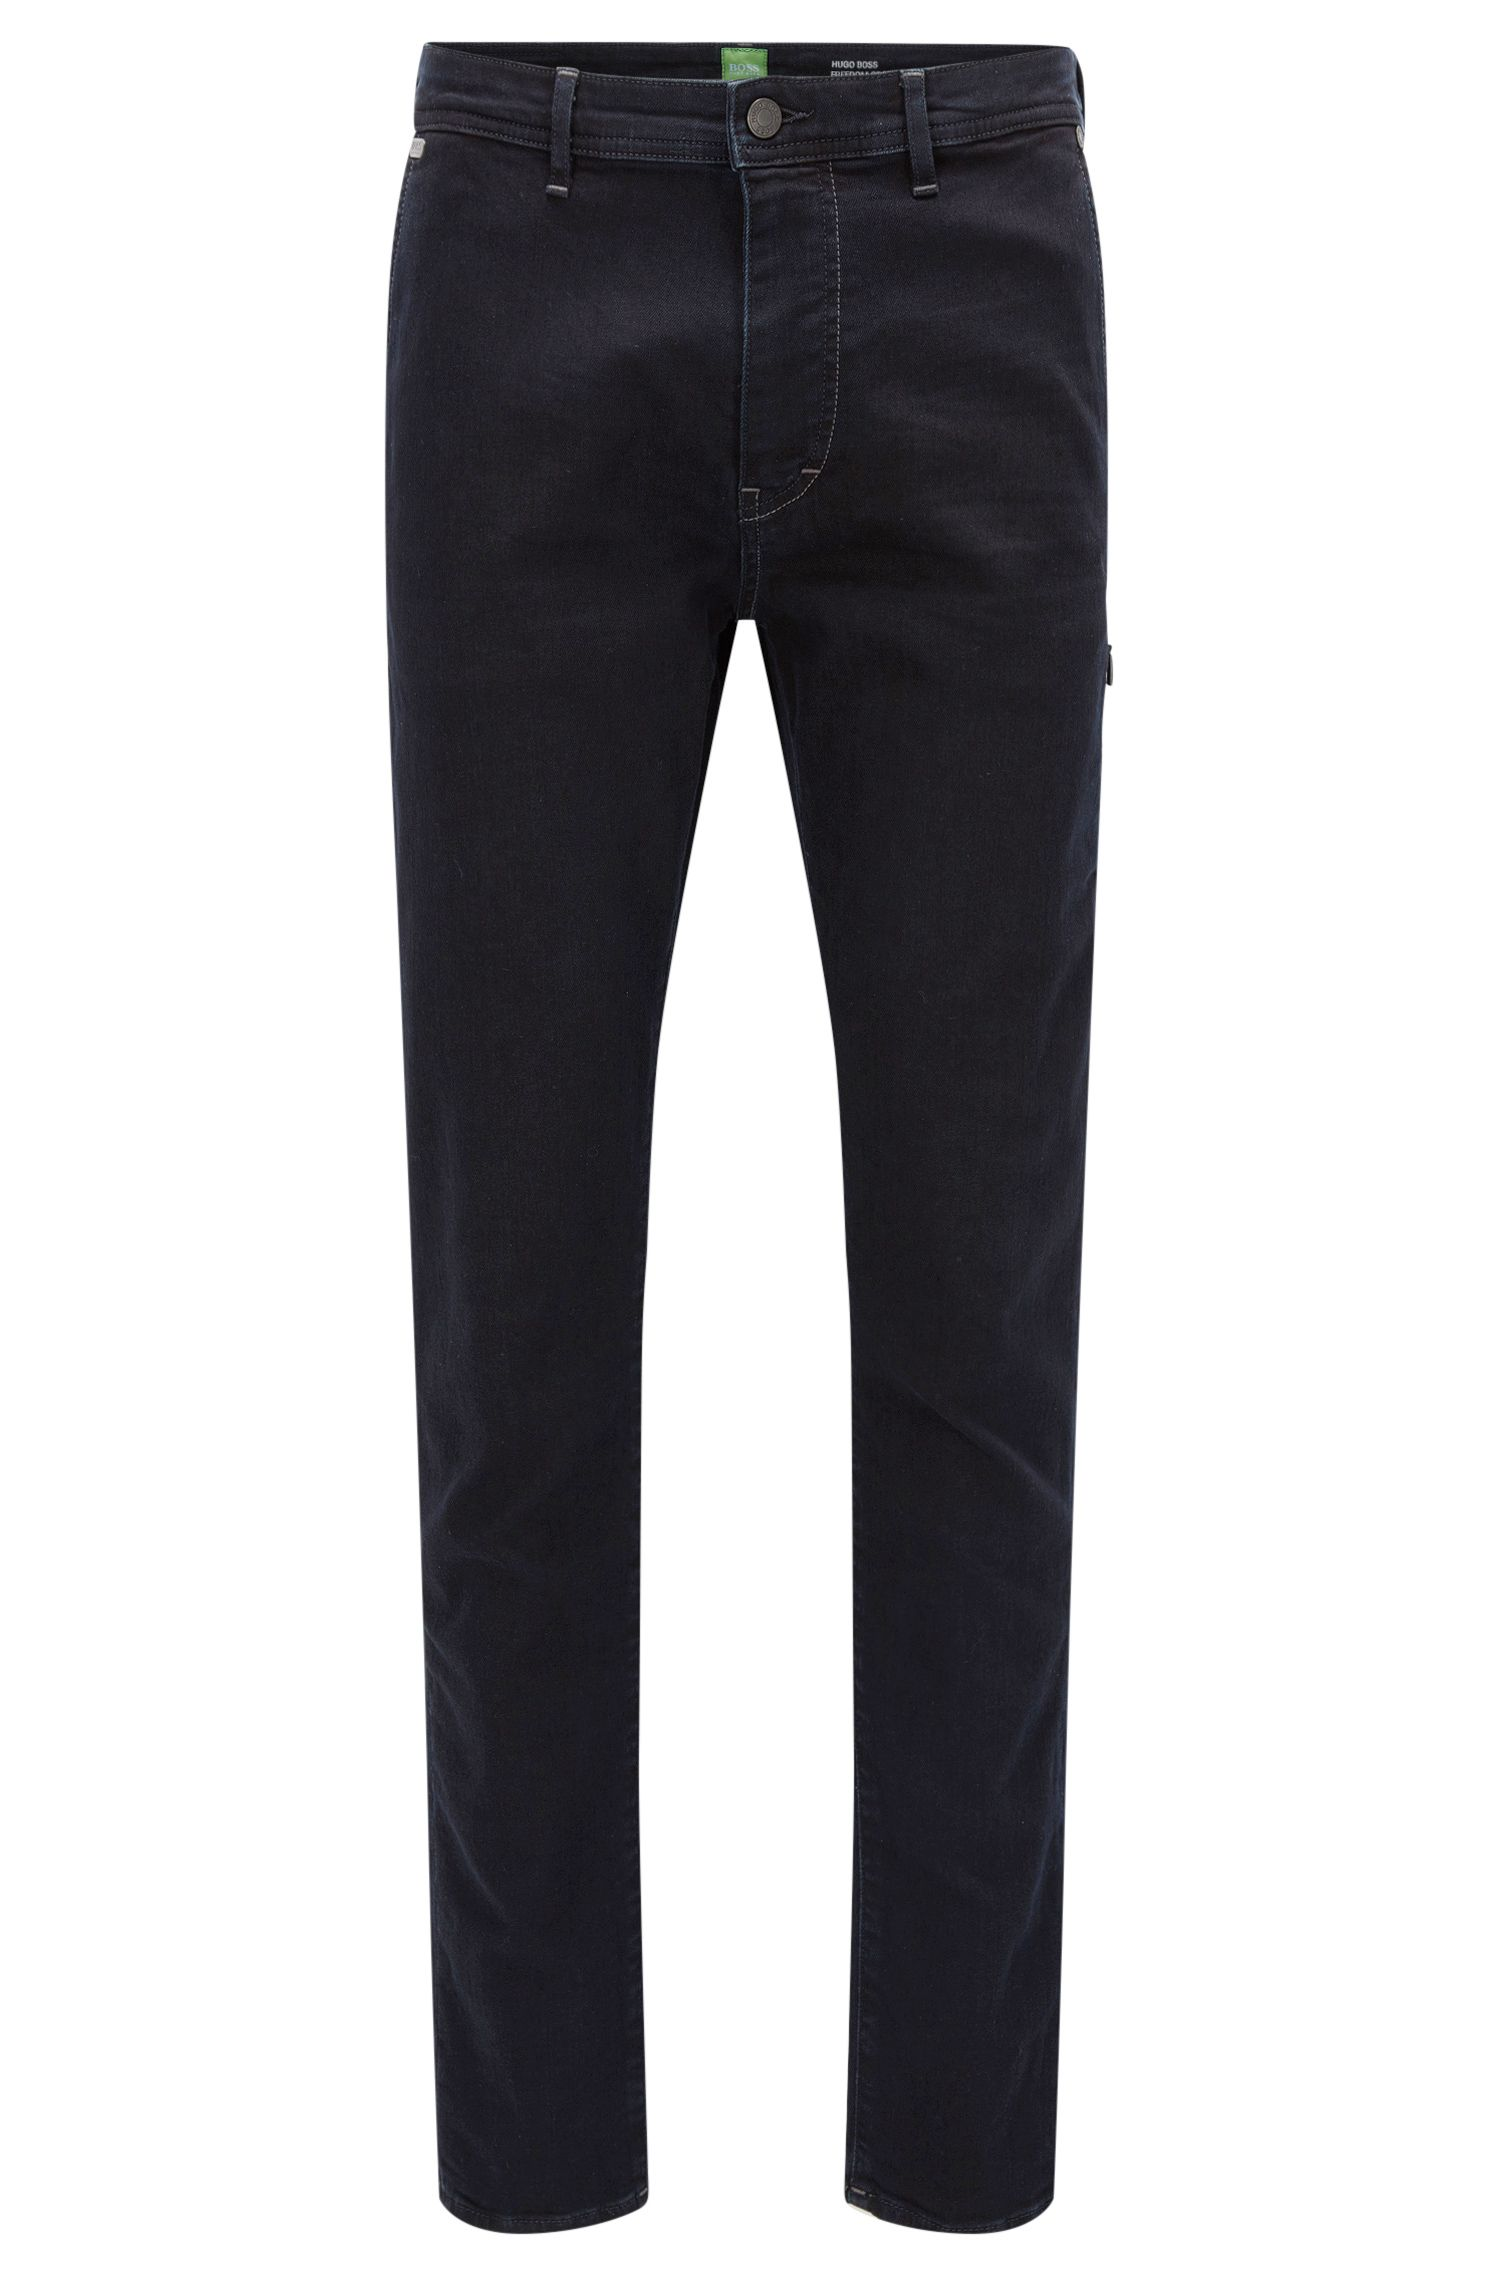 Jeans Tapered Fit en denim power-stretch